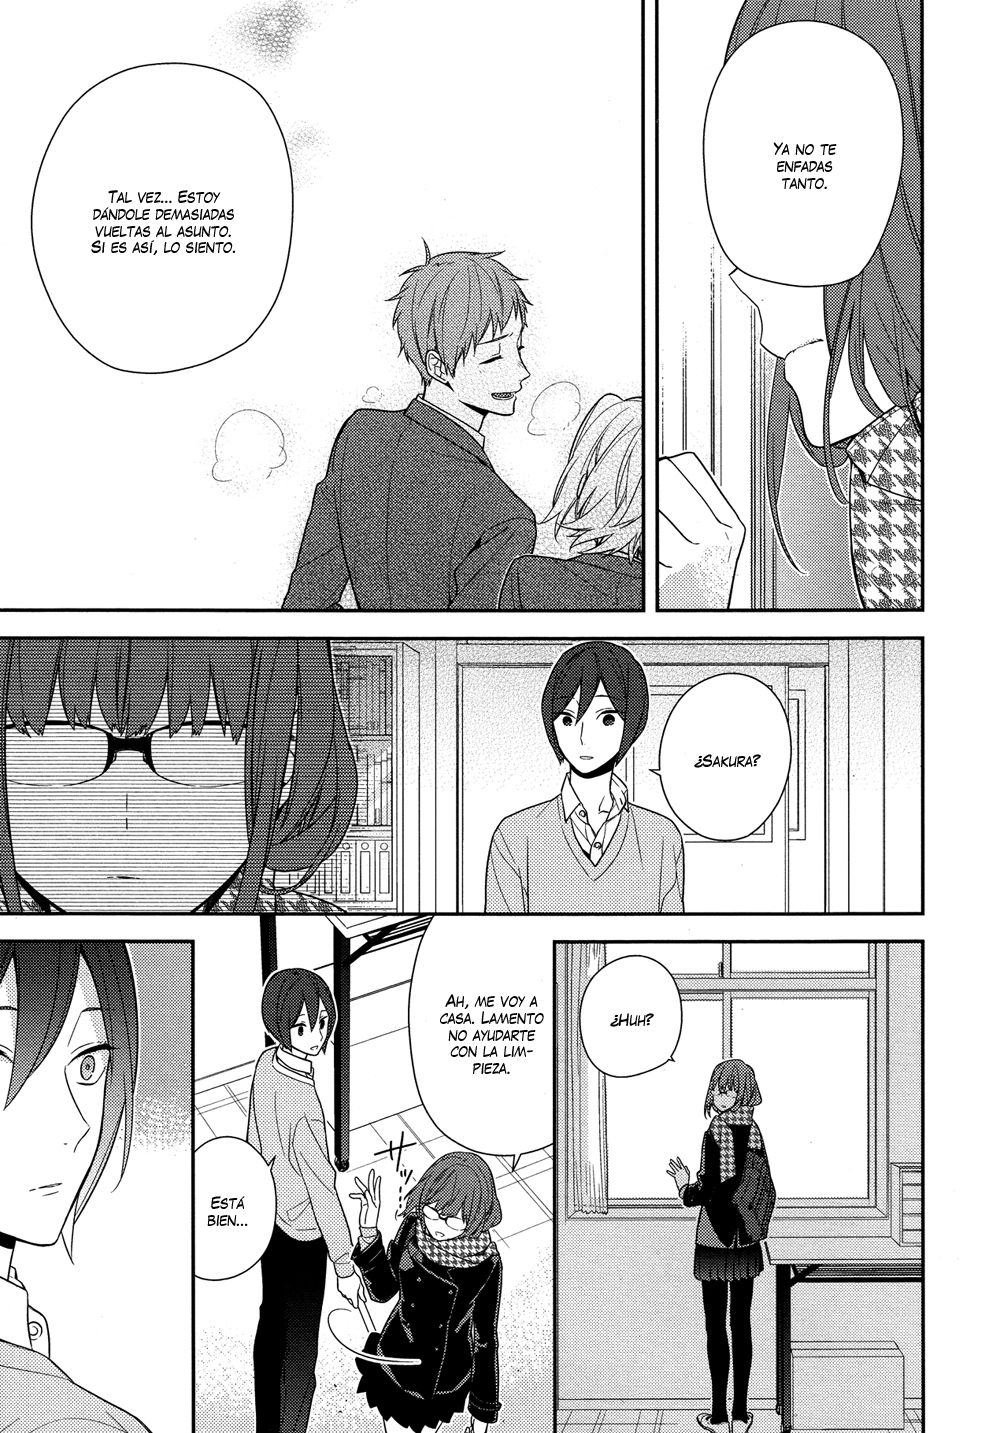 http://c5.ninemanga.com/es_manga/19/1043/453413/e334ea177458f7e0c7e6815079acf967.jpg Page 7